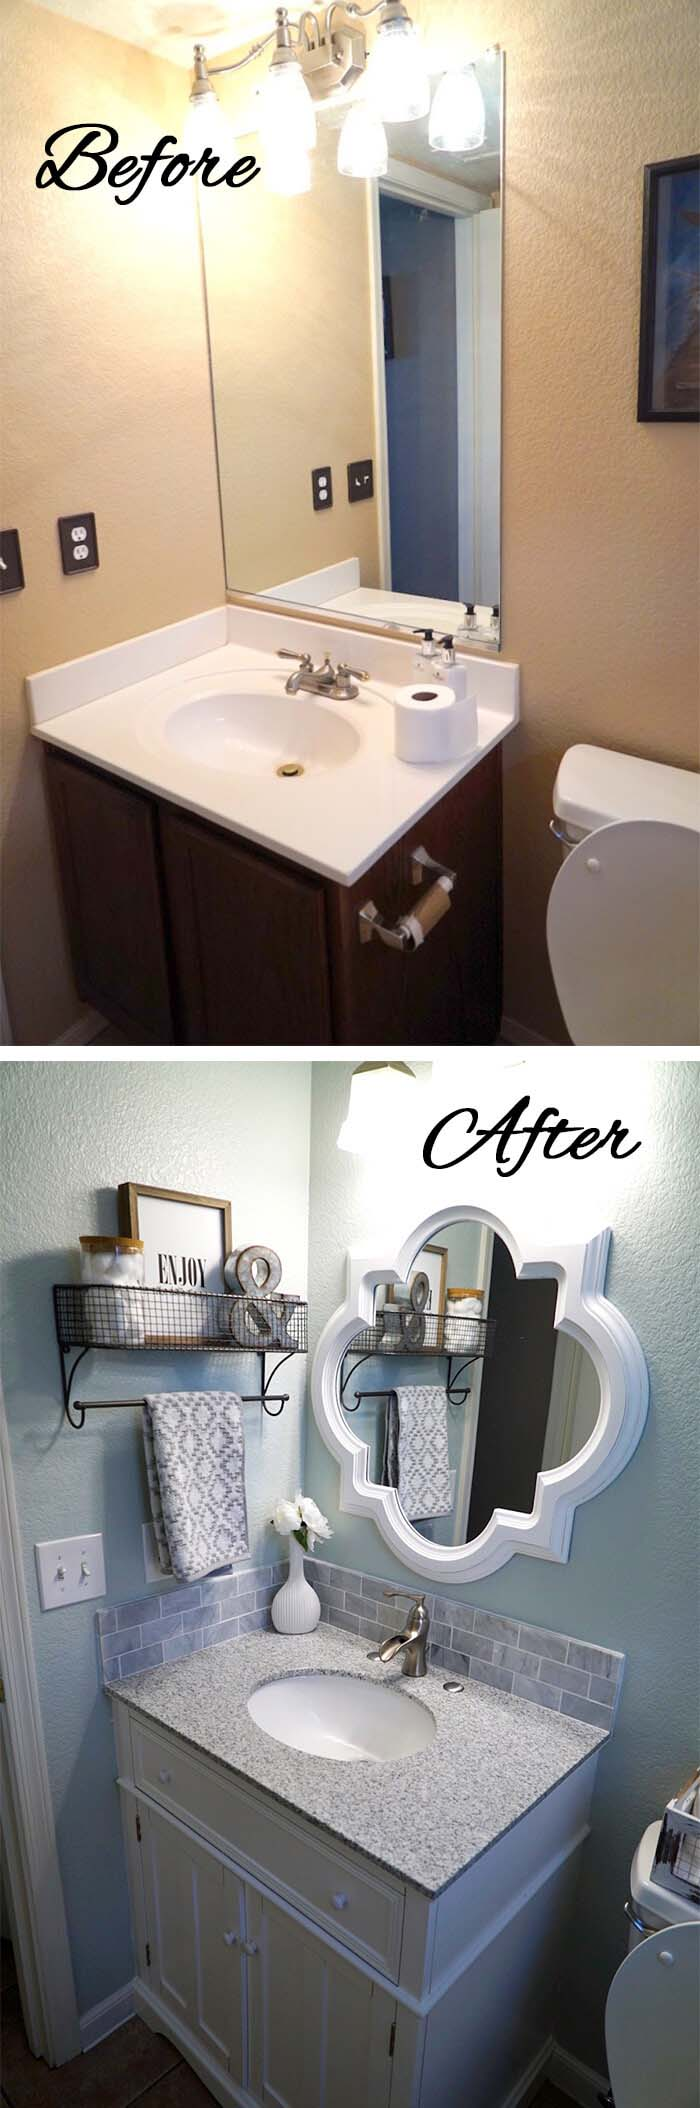 Unexpected Mirrors Work in Small Bathrooms #bathroom #makeover #decorhomeideas